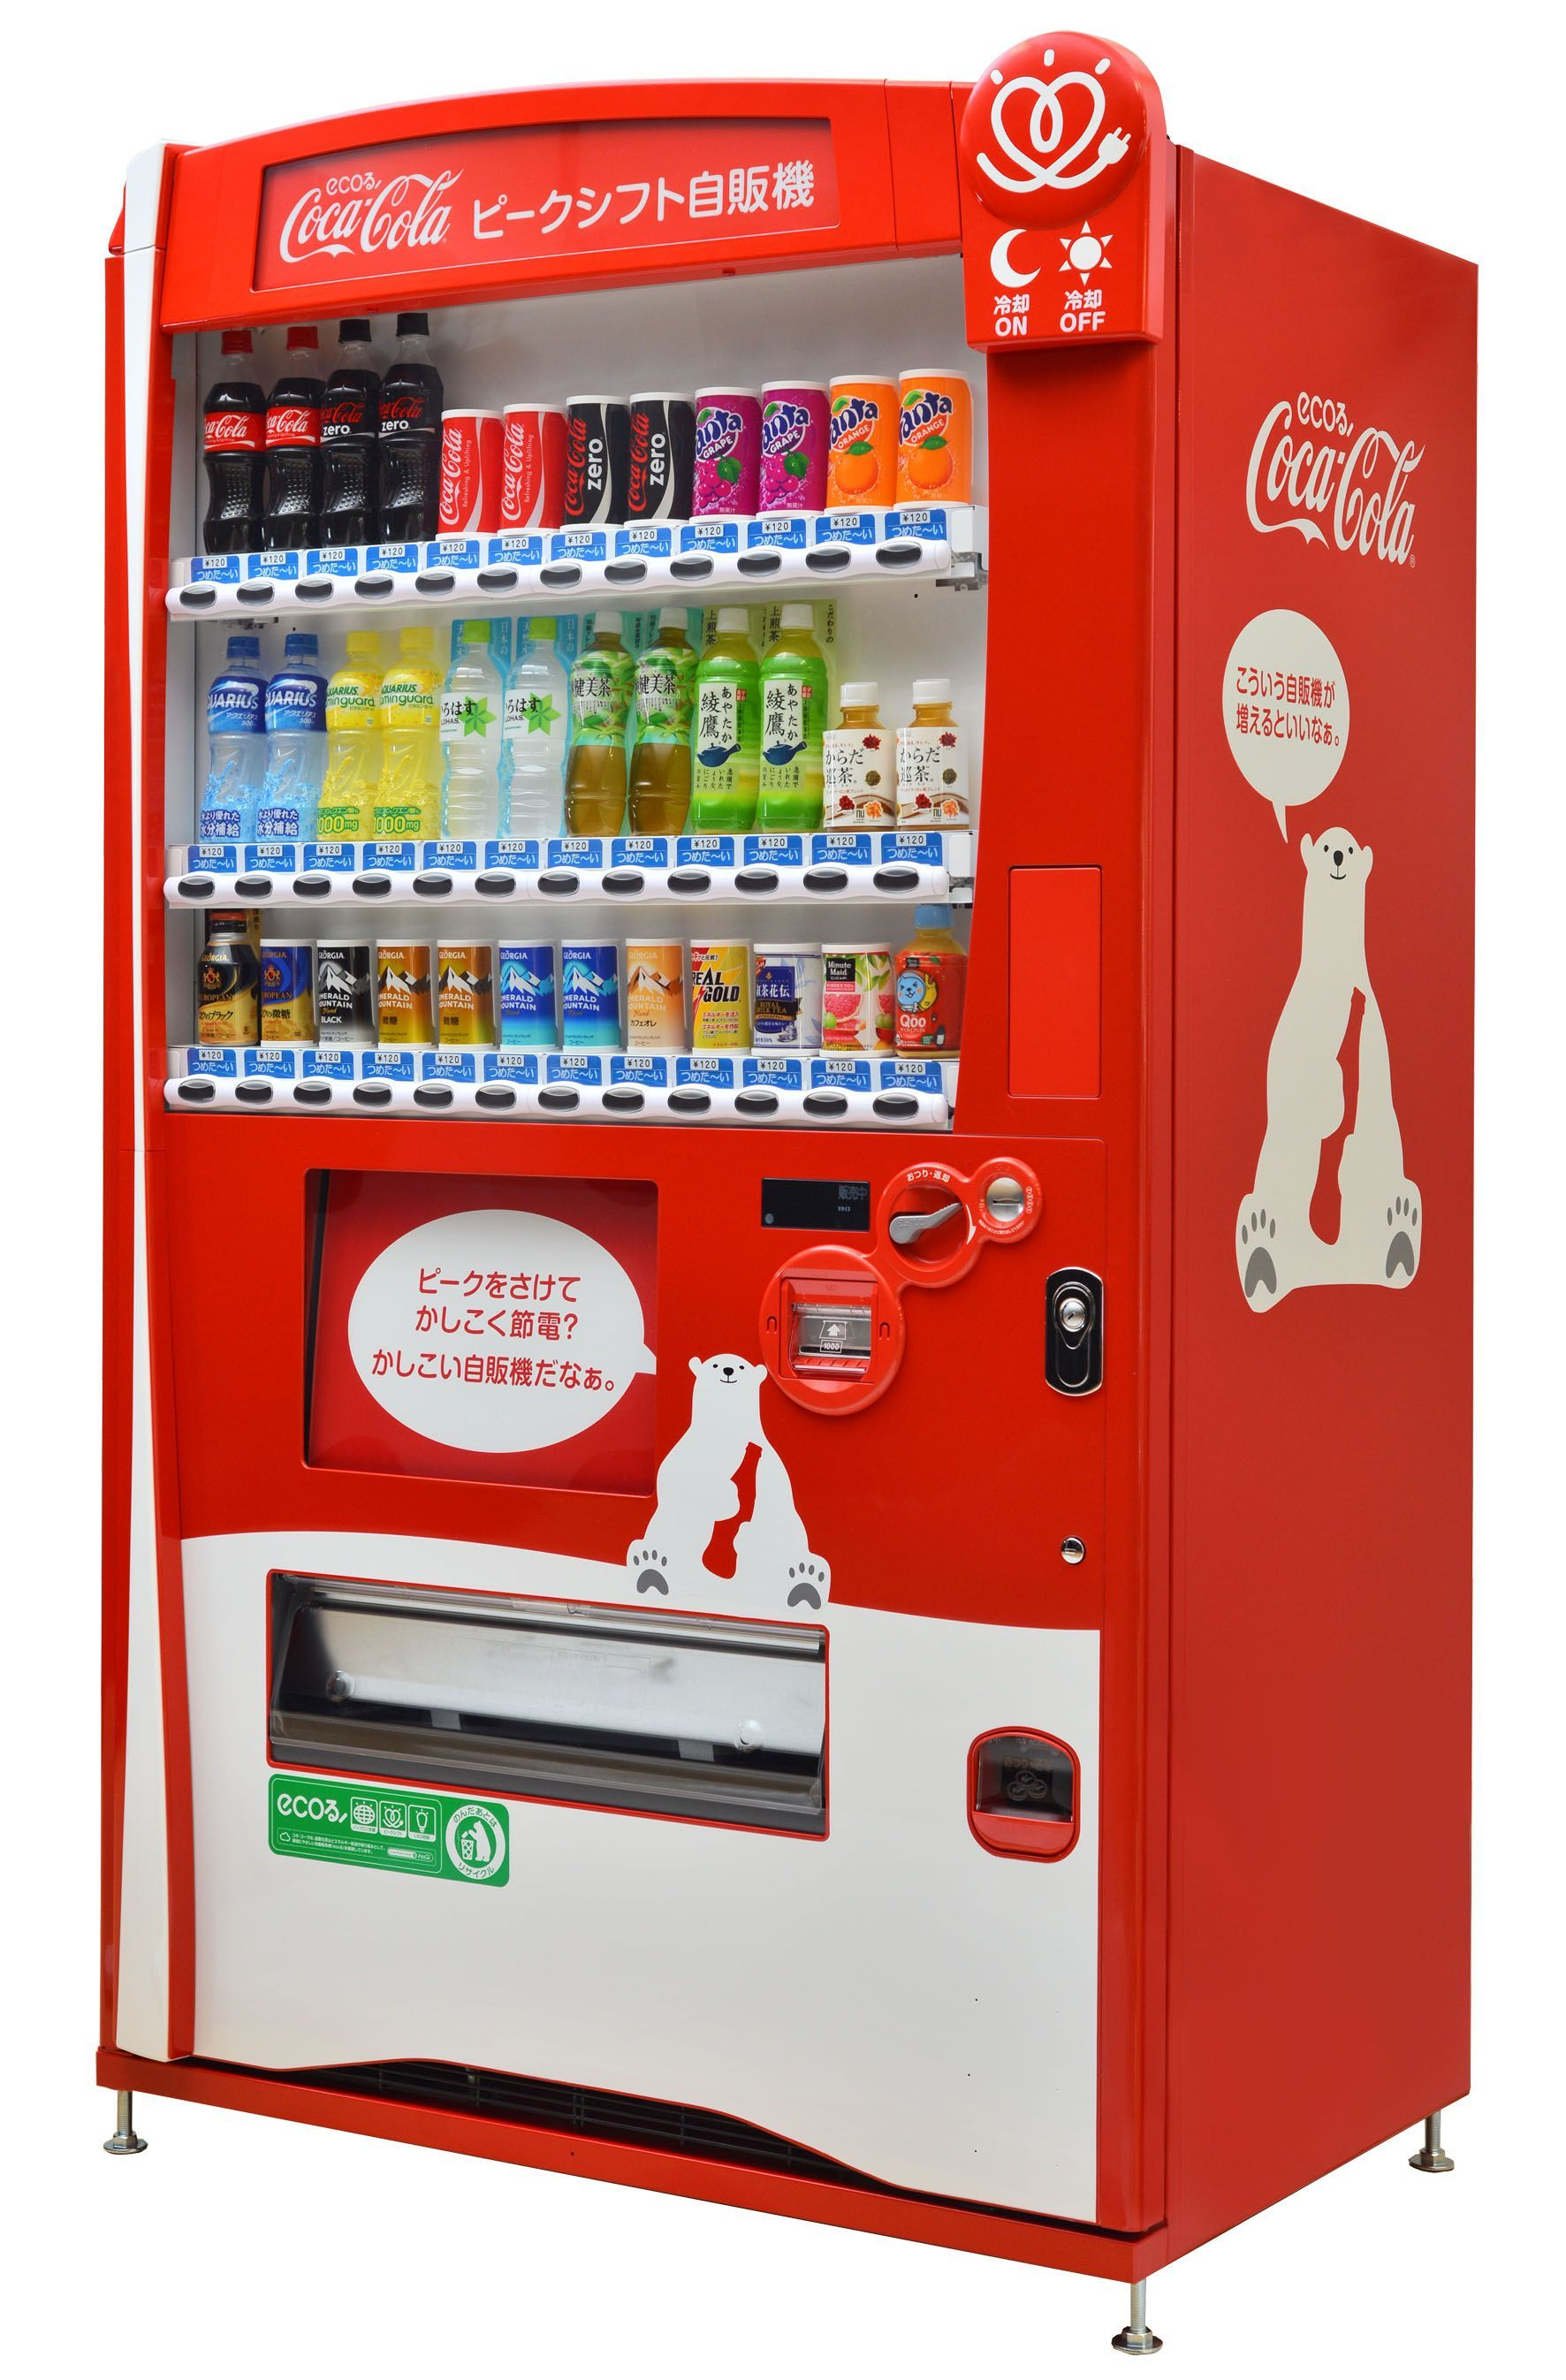 coca colas brand image and its new vending machine Coca-cola to debut ai-powered vending machine  to enhance the vending maching experience the brand was an  vending machine app crain's new york is.